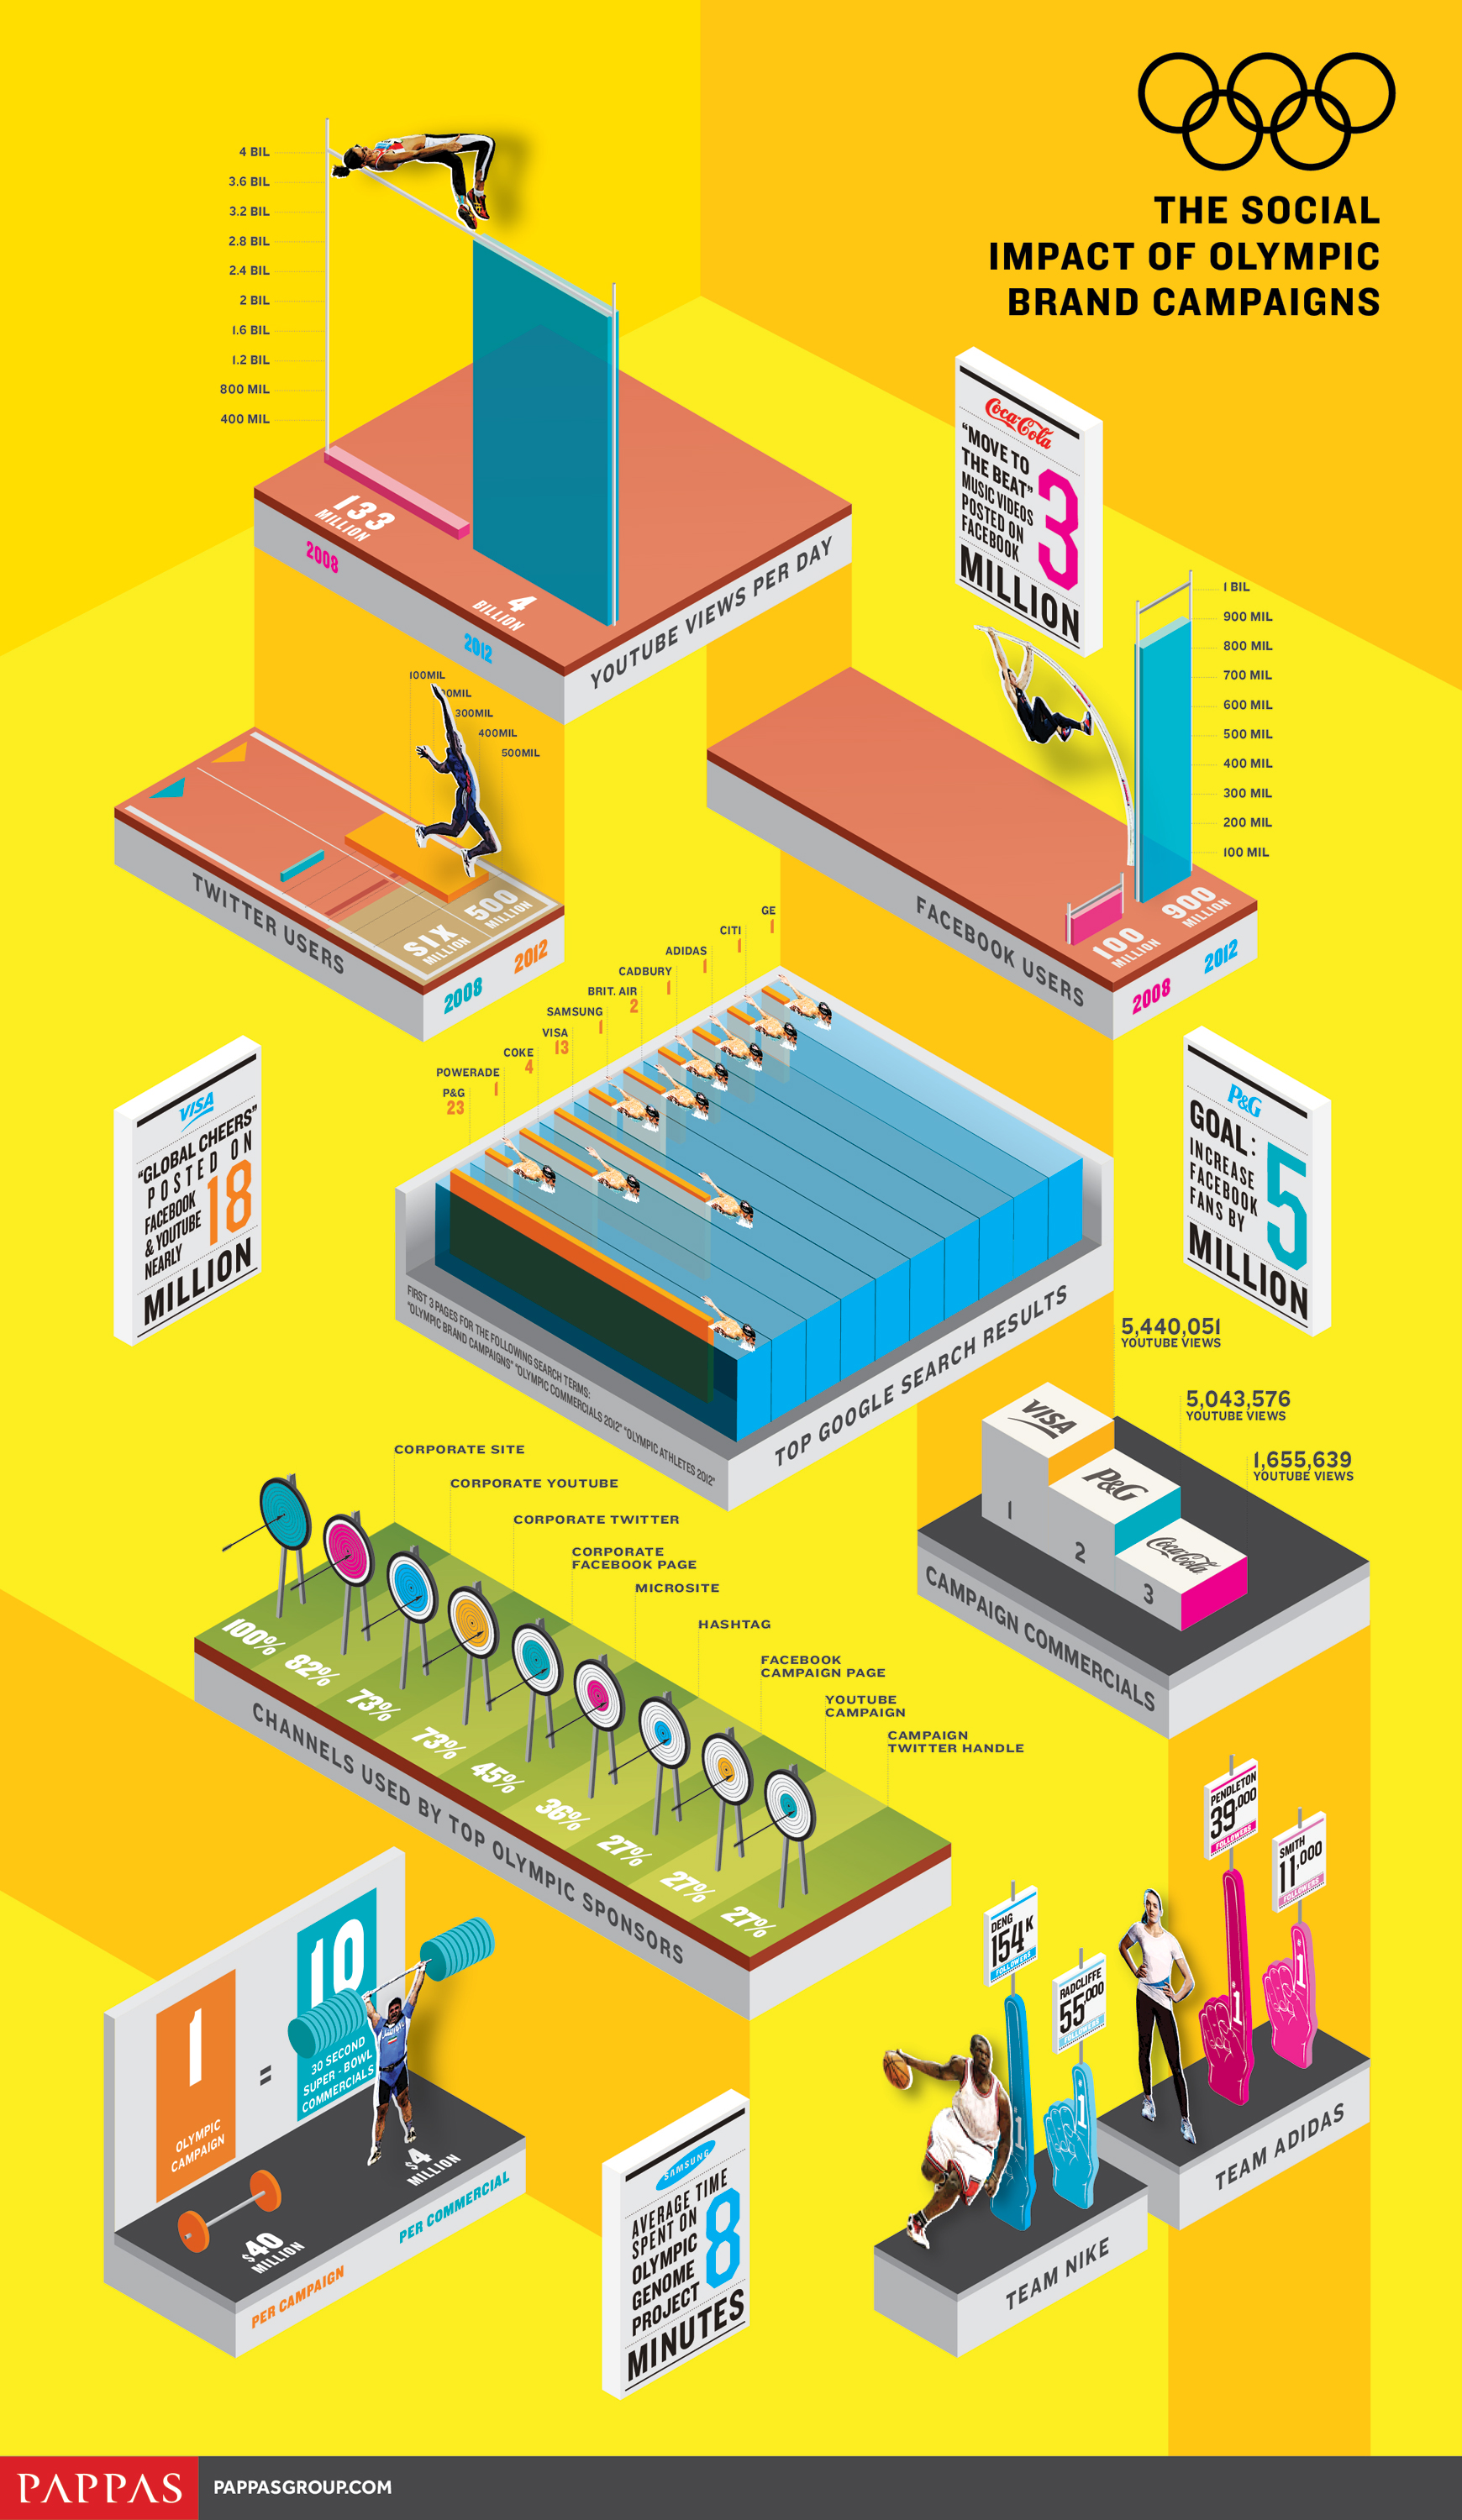 THE SOCIAL IMPACT OF OLYMPIC BRAND CAMPAIGNS - オリンピックの社会的インパクト -